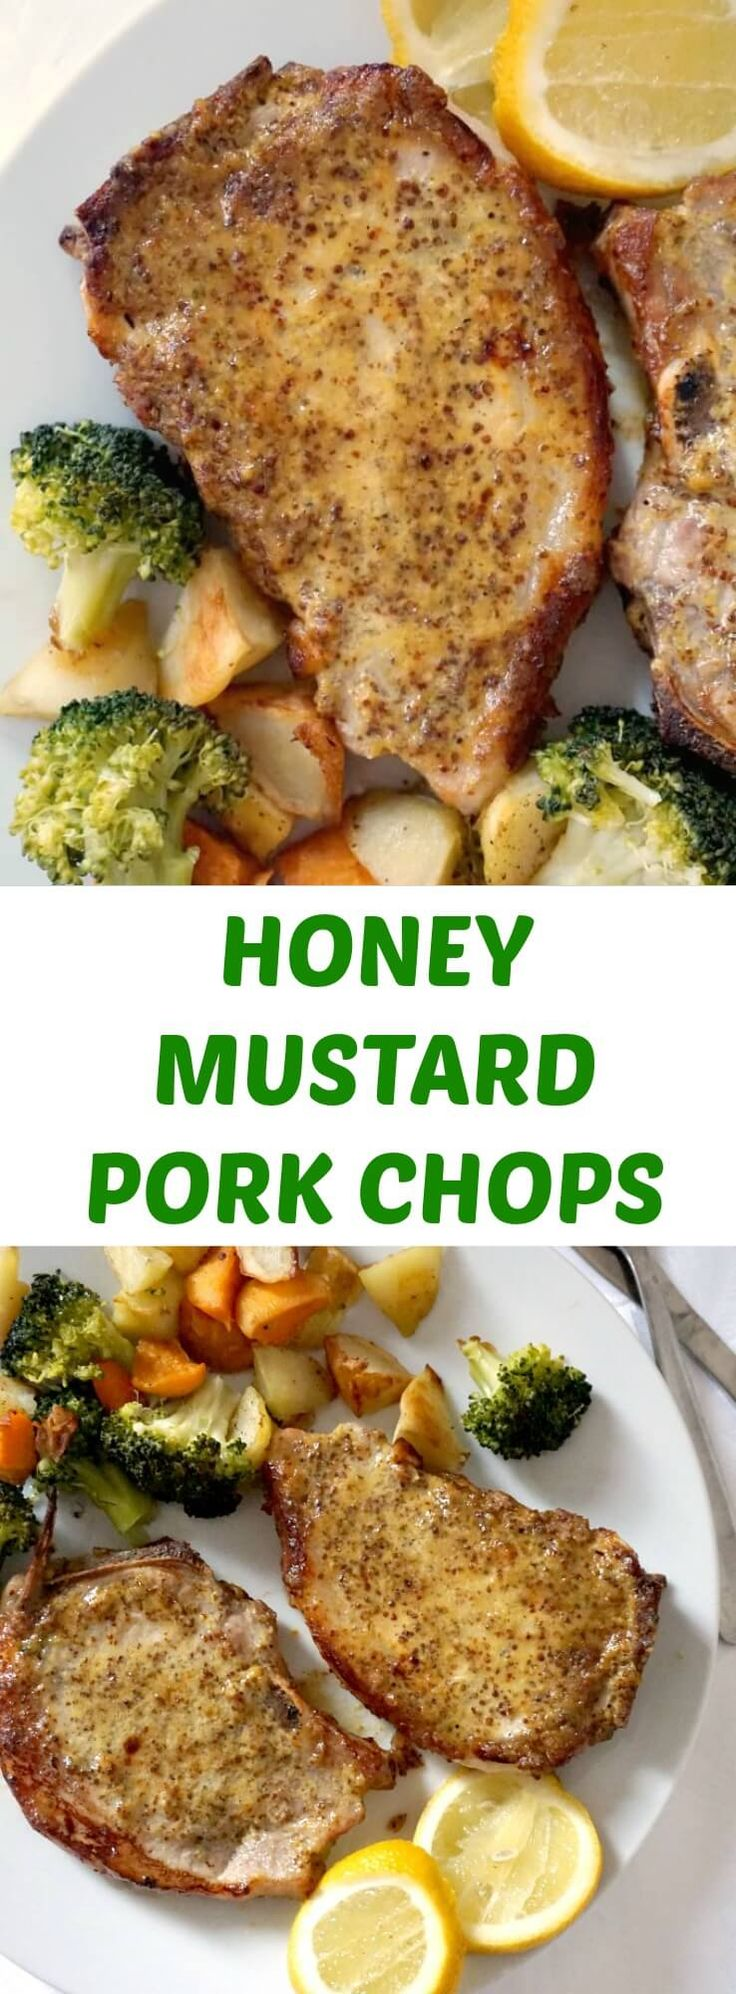 Baked Honey Mustard Pork Chops with broccoli, potatoes and carrots, a super delicious low-carb meal for two. Super simple to make, with a fantastic honey mustard sauce, this recipe is sheer bliss.